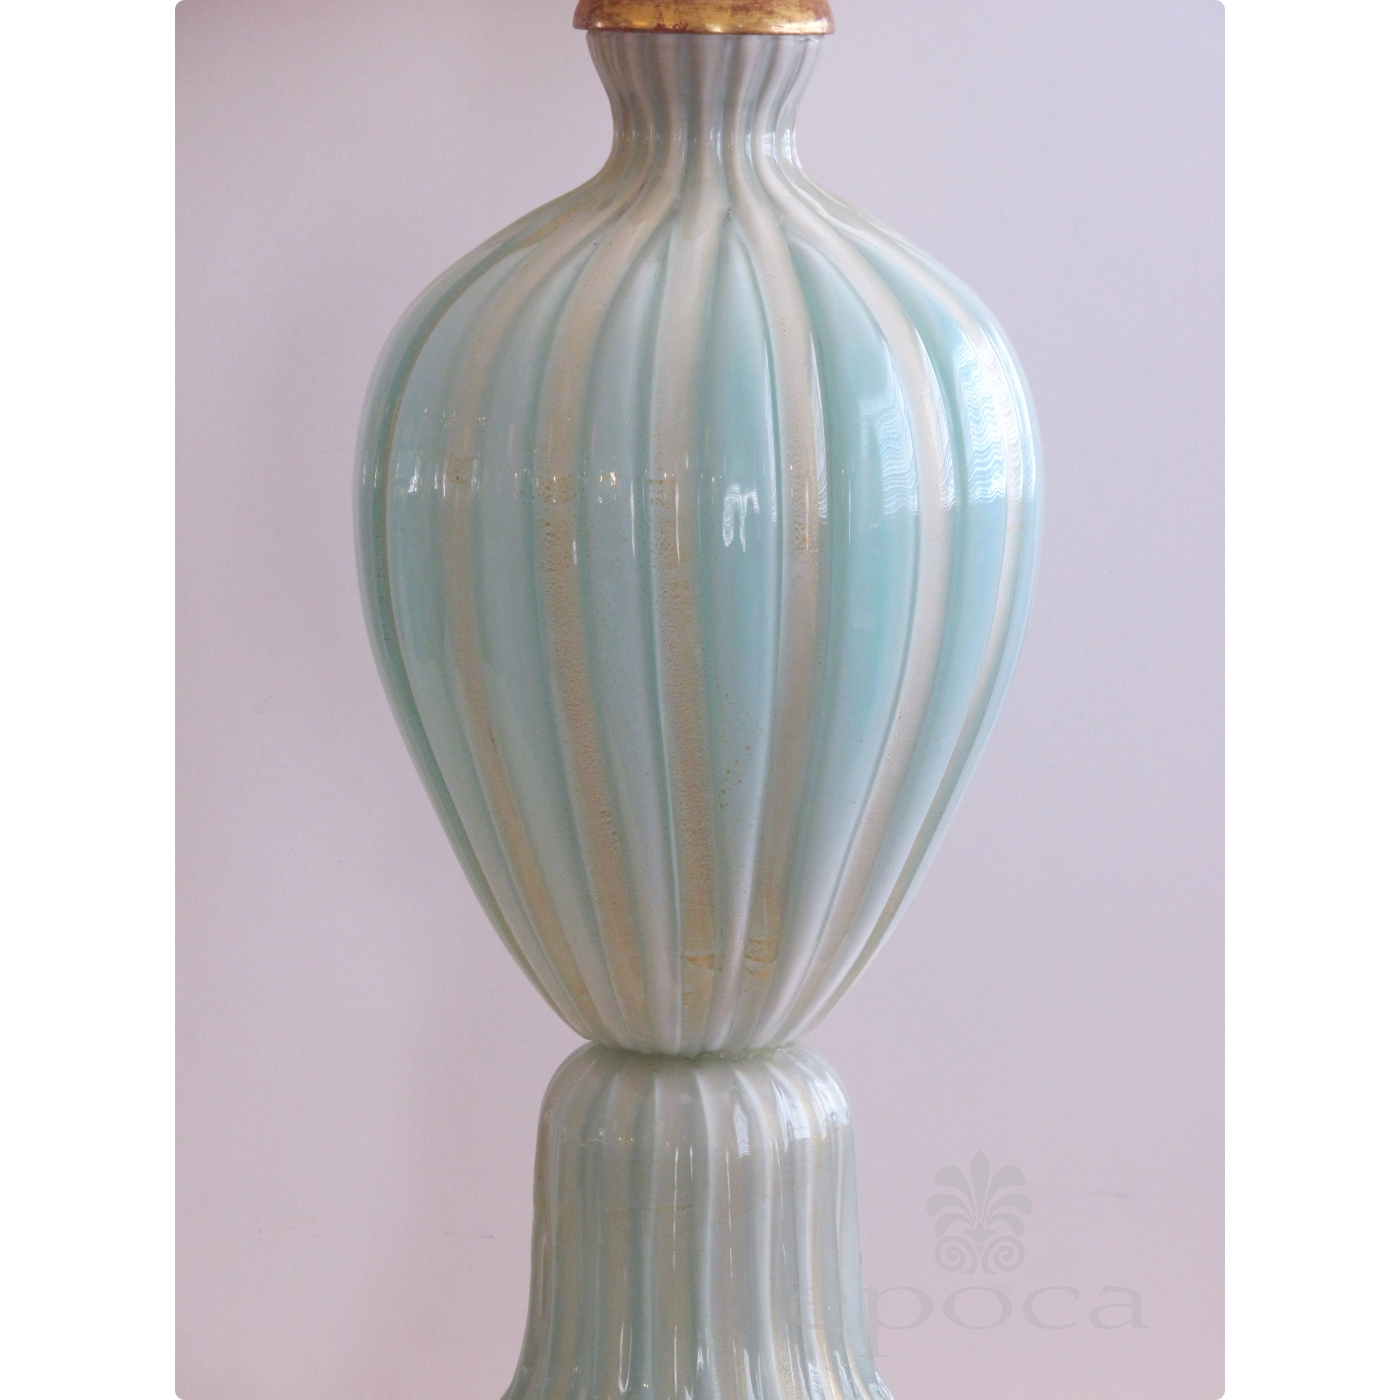 a large and good quality murano 1950's barovier & toso